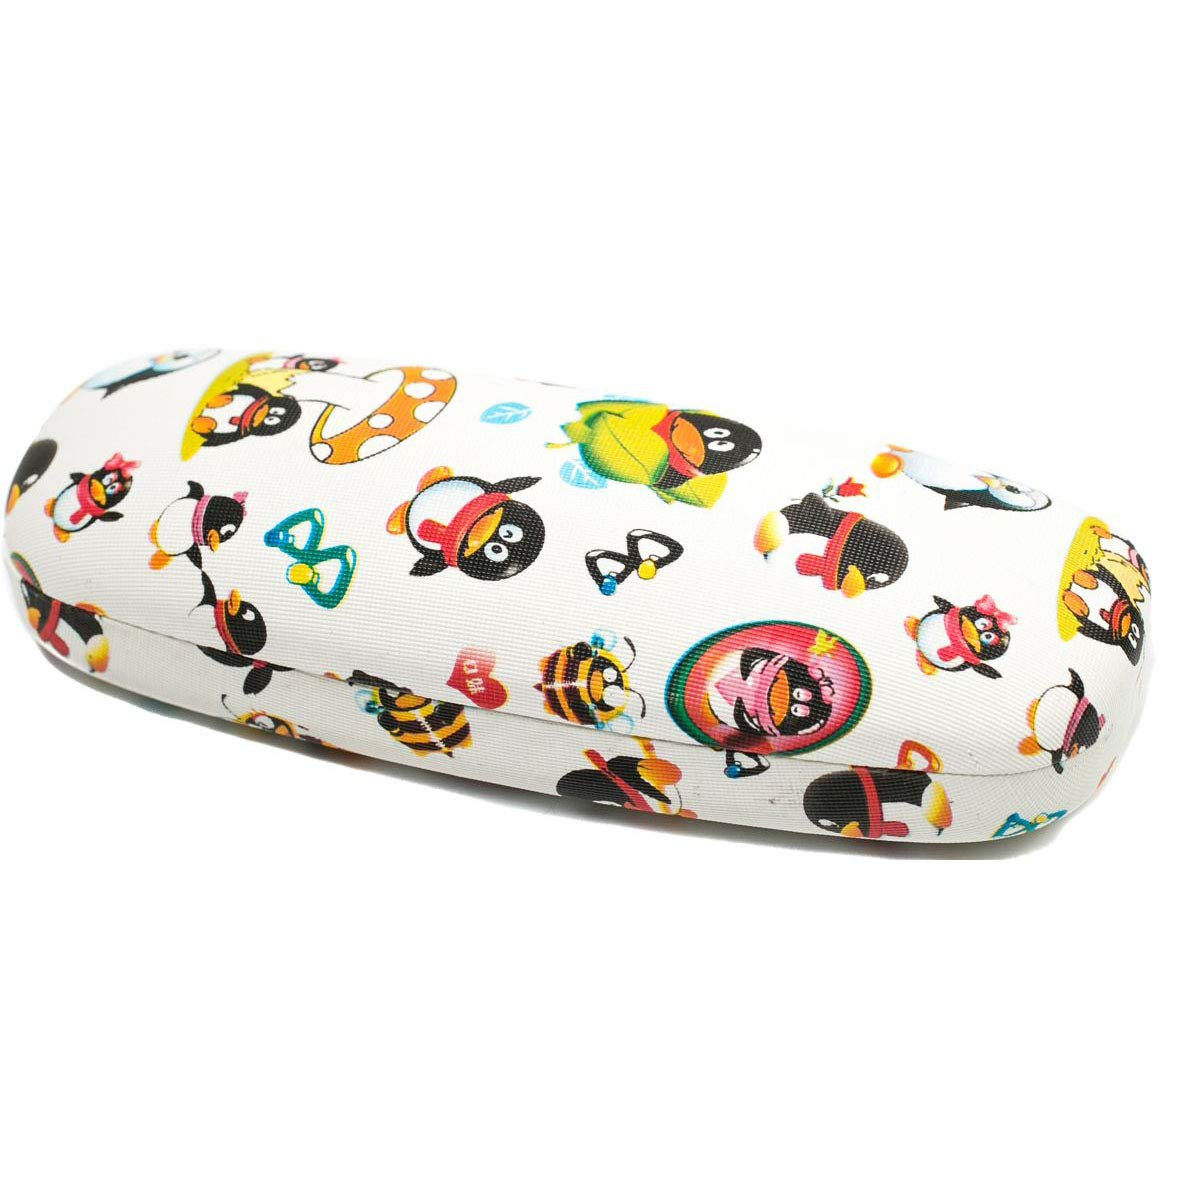 Handmade Russian Eyeglass case for a boy, white with a color print, on a solid basis, covered with artificial leather